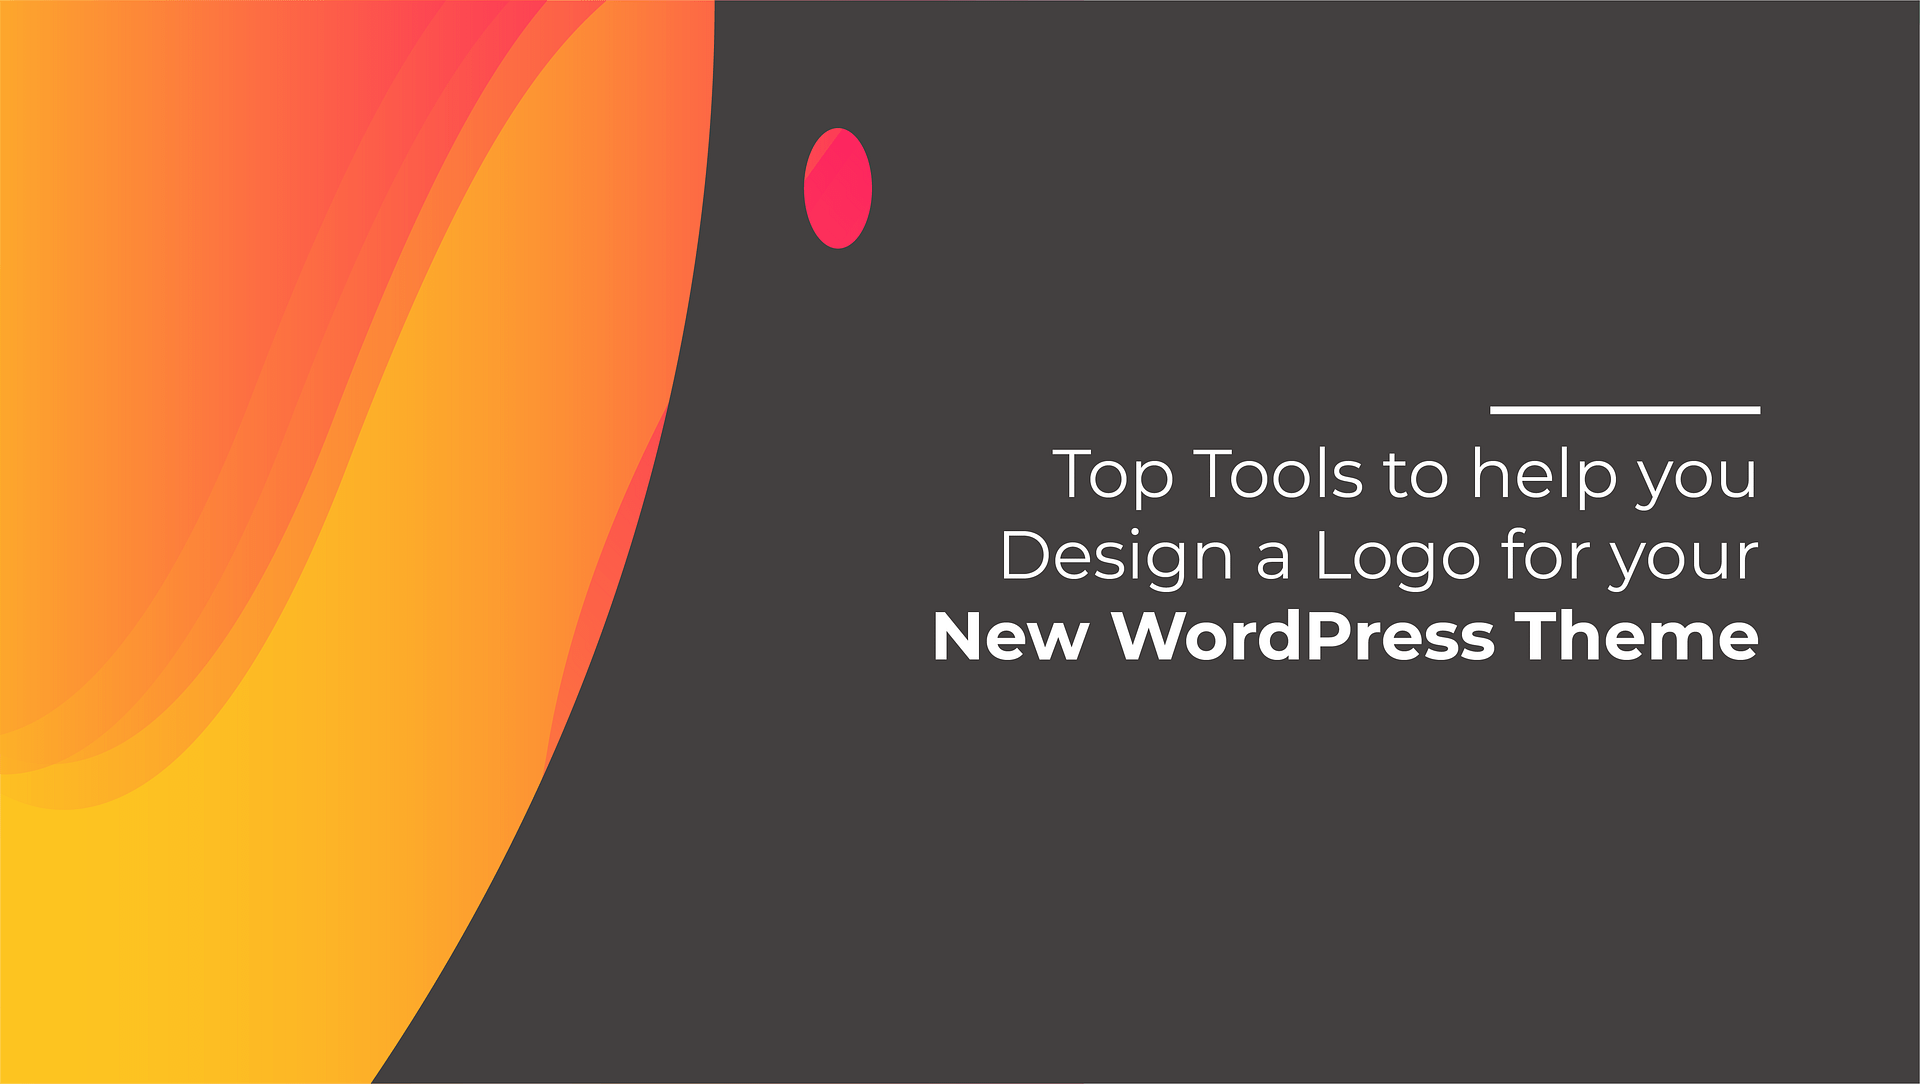 Top Tools to help you Design a Logo for your new WordPress Theme - 2021